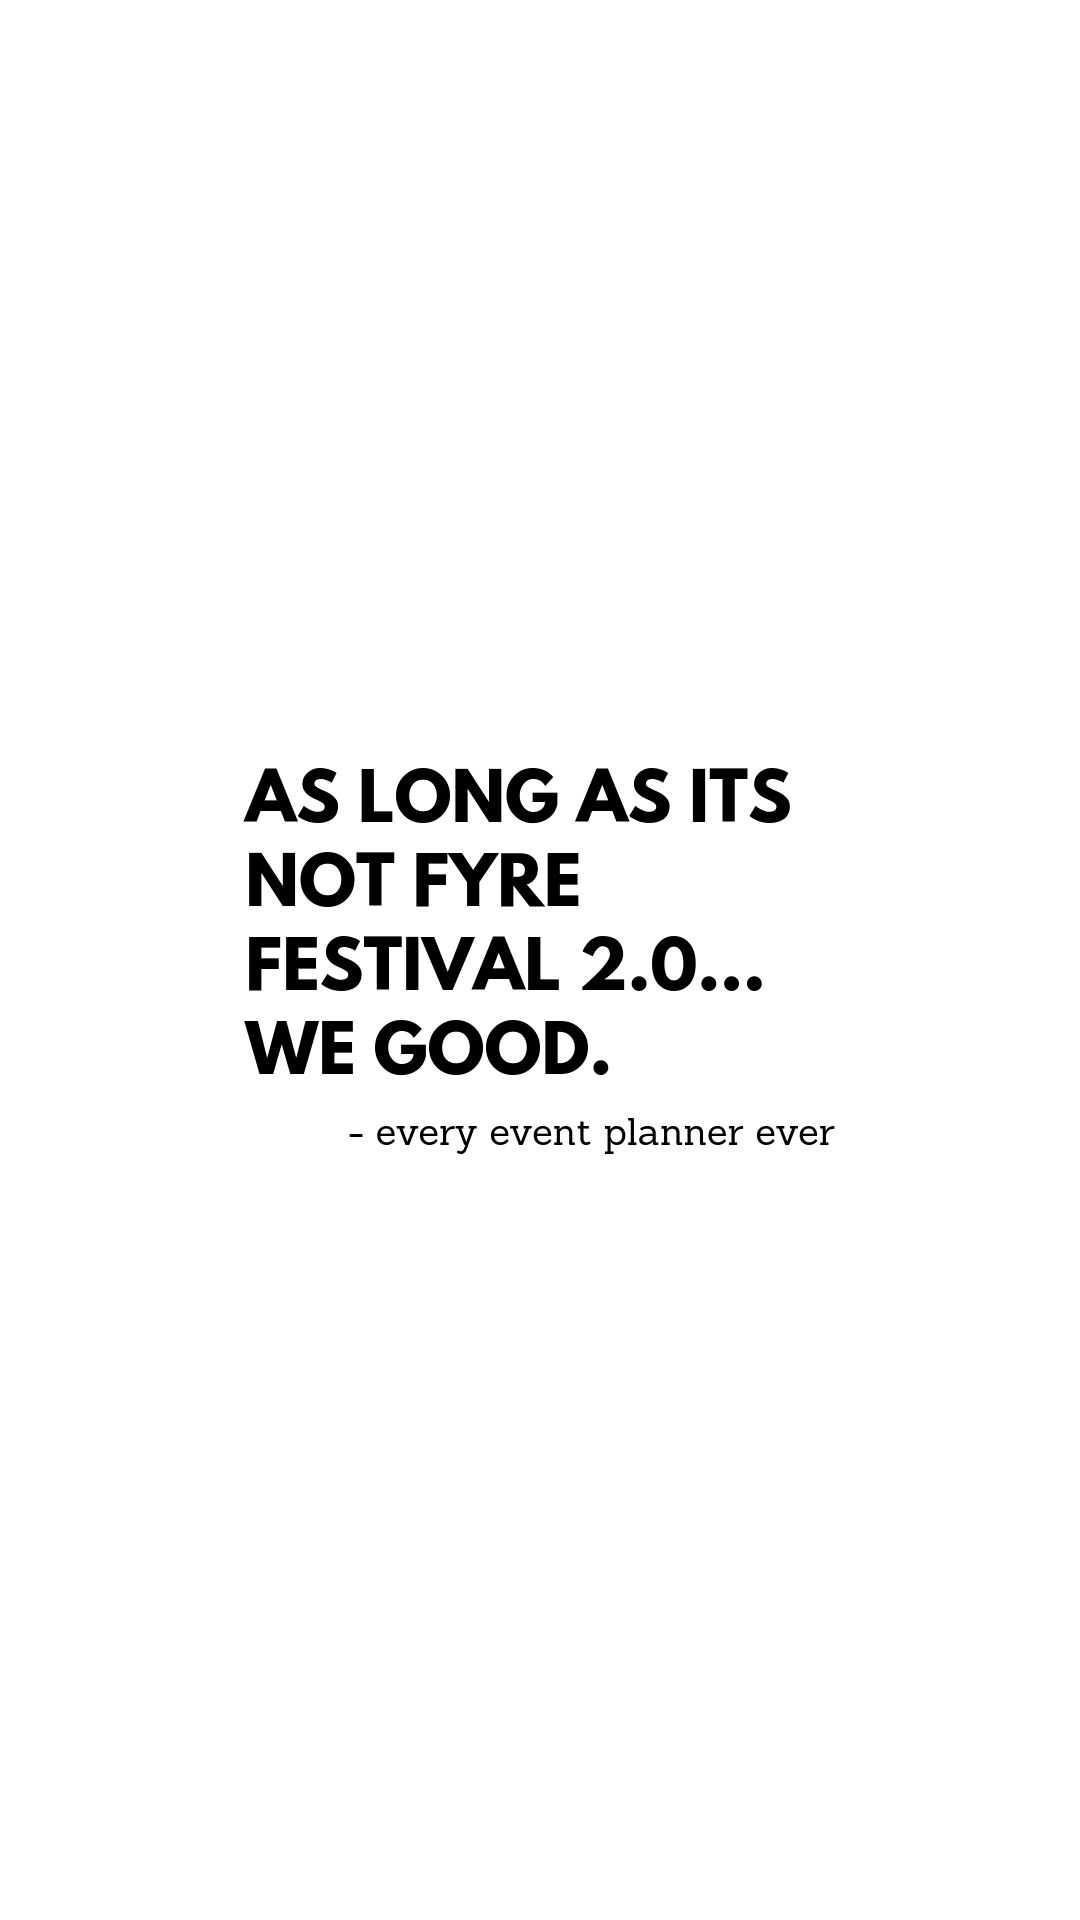 Said Every Event Planner Ever Eventplanners Events Creative Festival Gathering Planning Quote Event Quotes Event Planner Quotes Event Planning Quotes